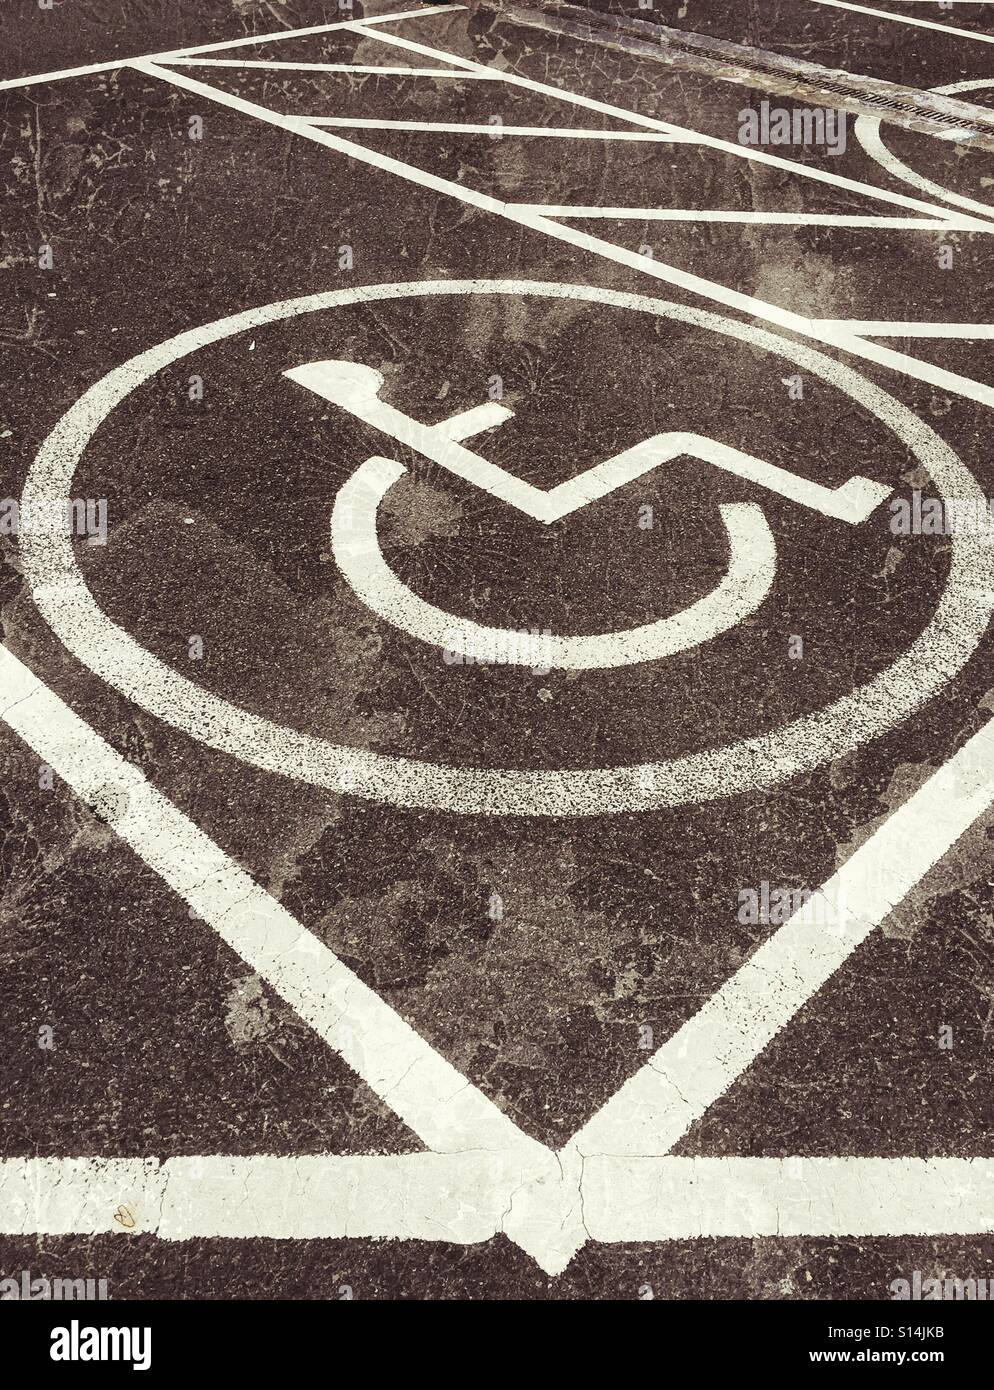 A grunge effect picture of a disabled persons car parking space a grunge effect picture of a disabled persons car parking space the symbol of a buycottarizona